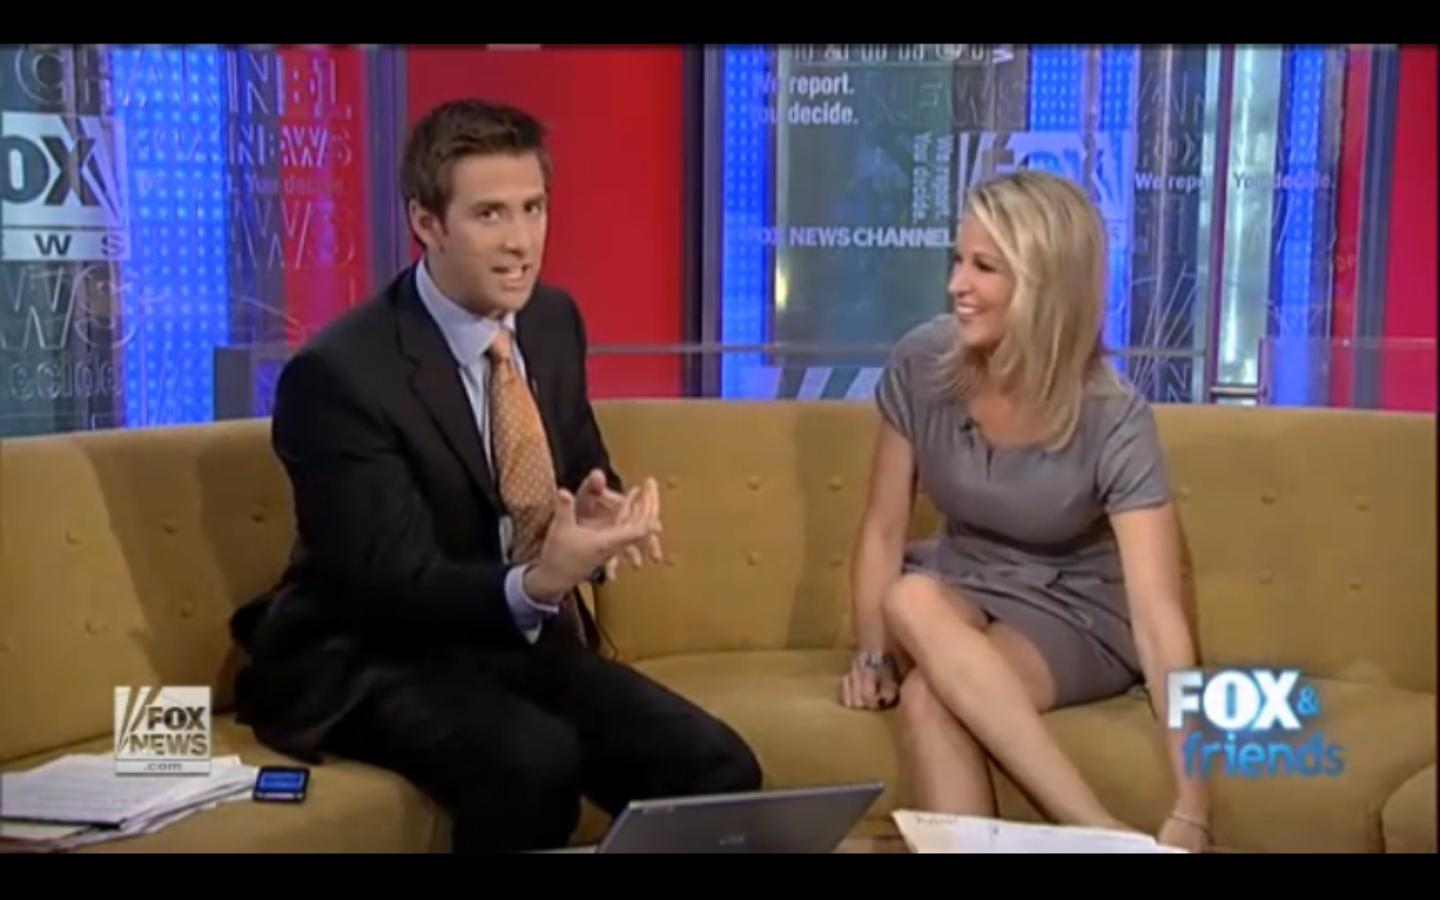 Fox and Friends After The Show Show 08/30/2010: